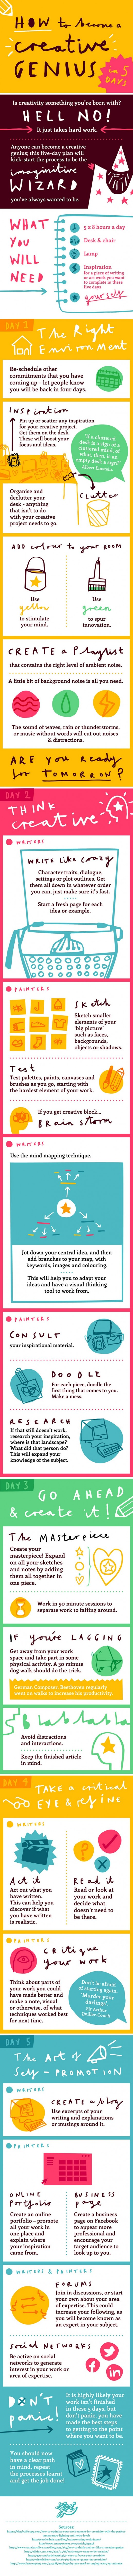 How-to-Become-a-Creative-Genius-Infographic